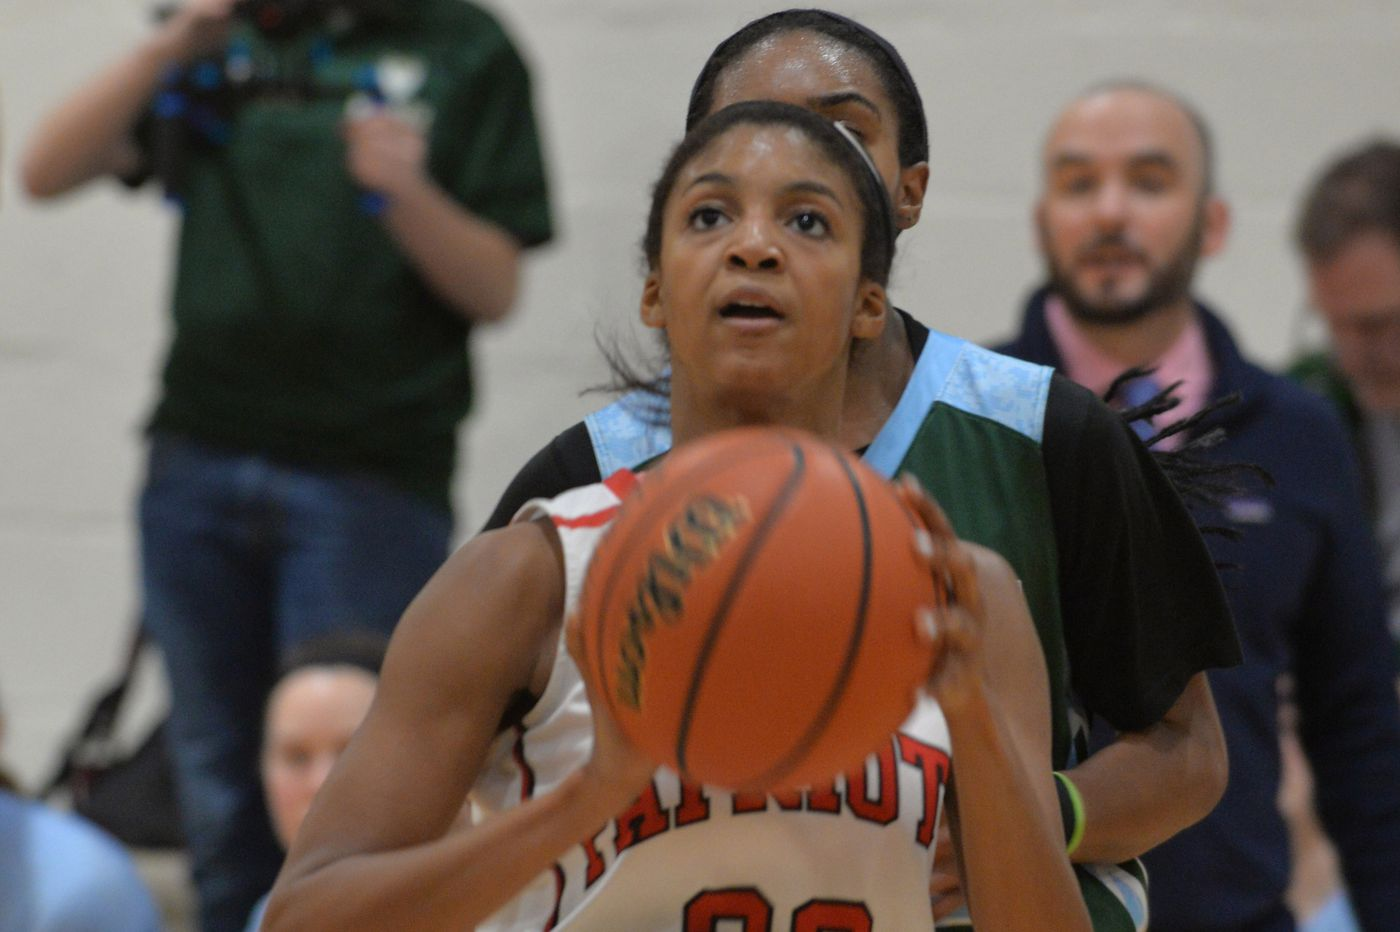 Thursday's Southeastern Pa. roundup: Germantown Academy girls' basketball gaining national recognition